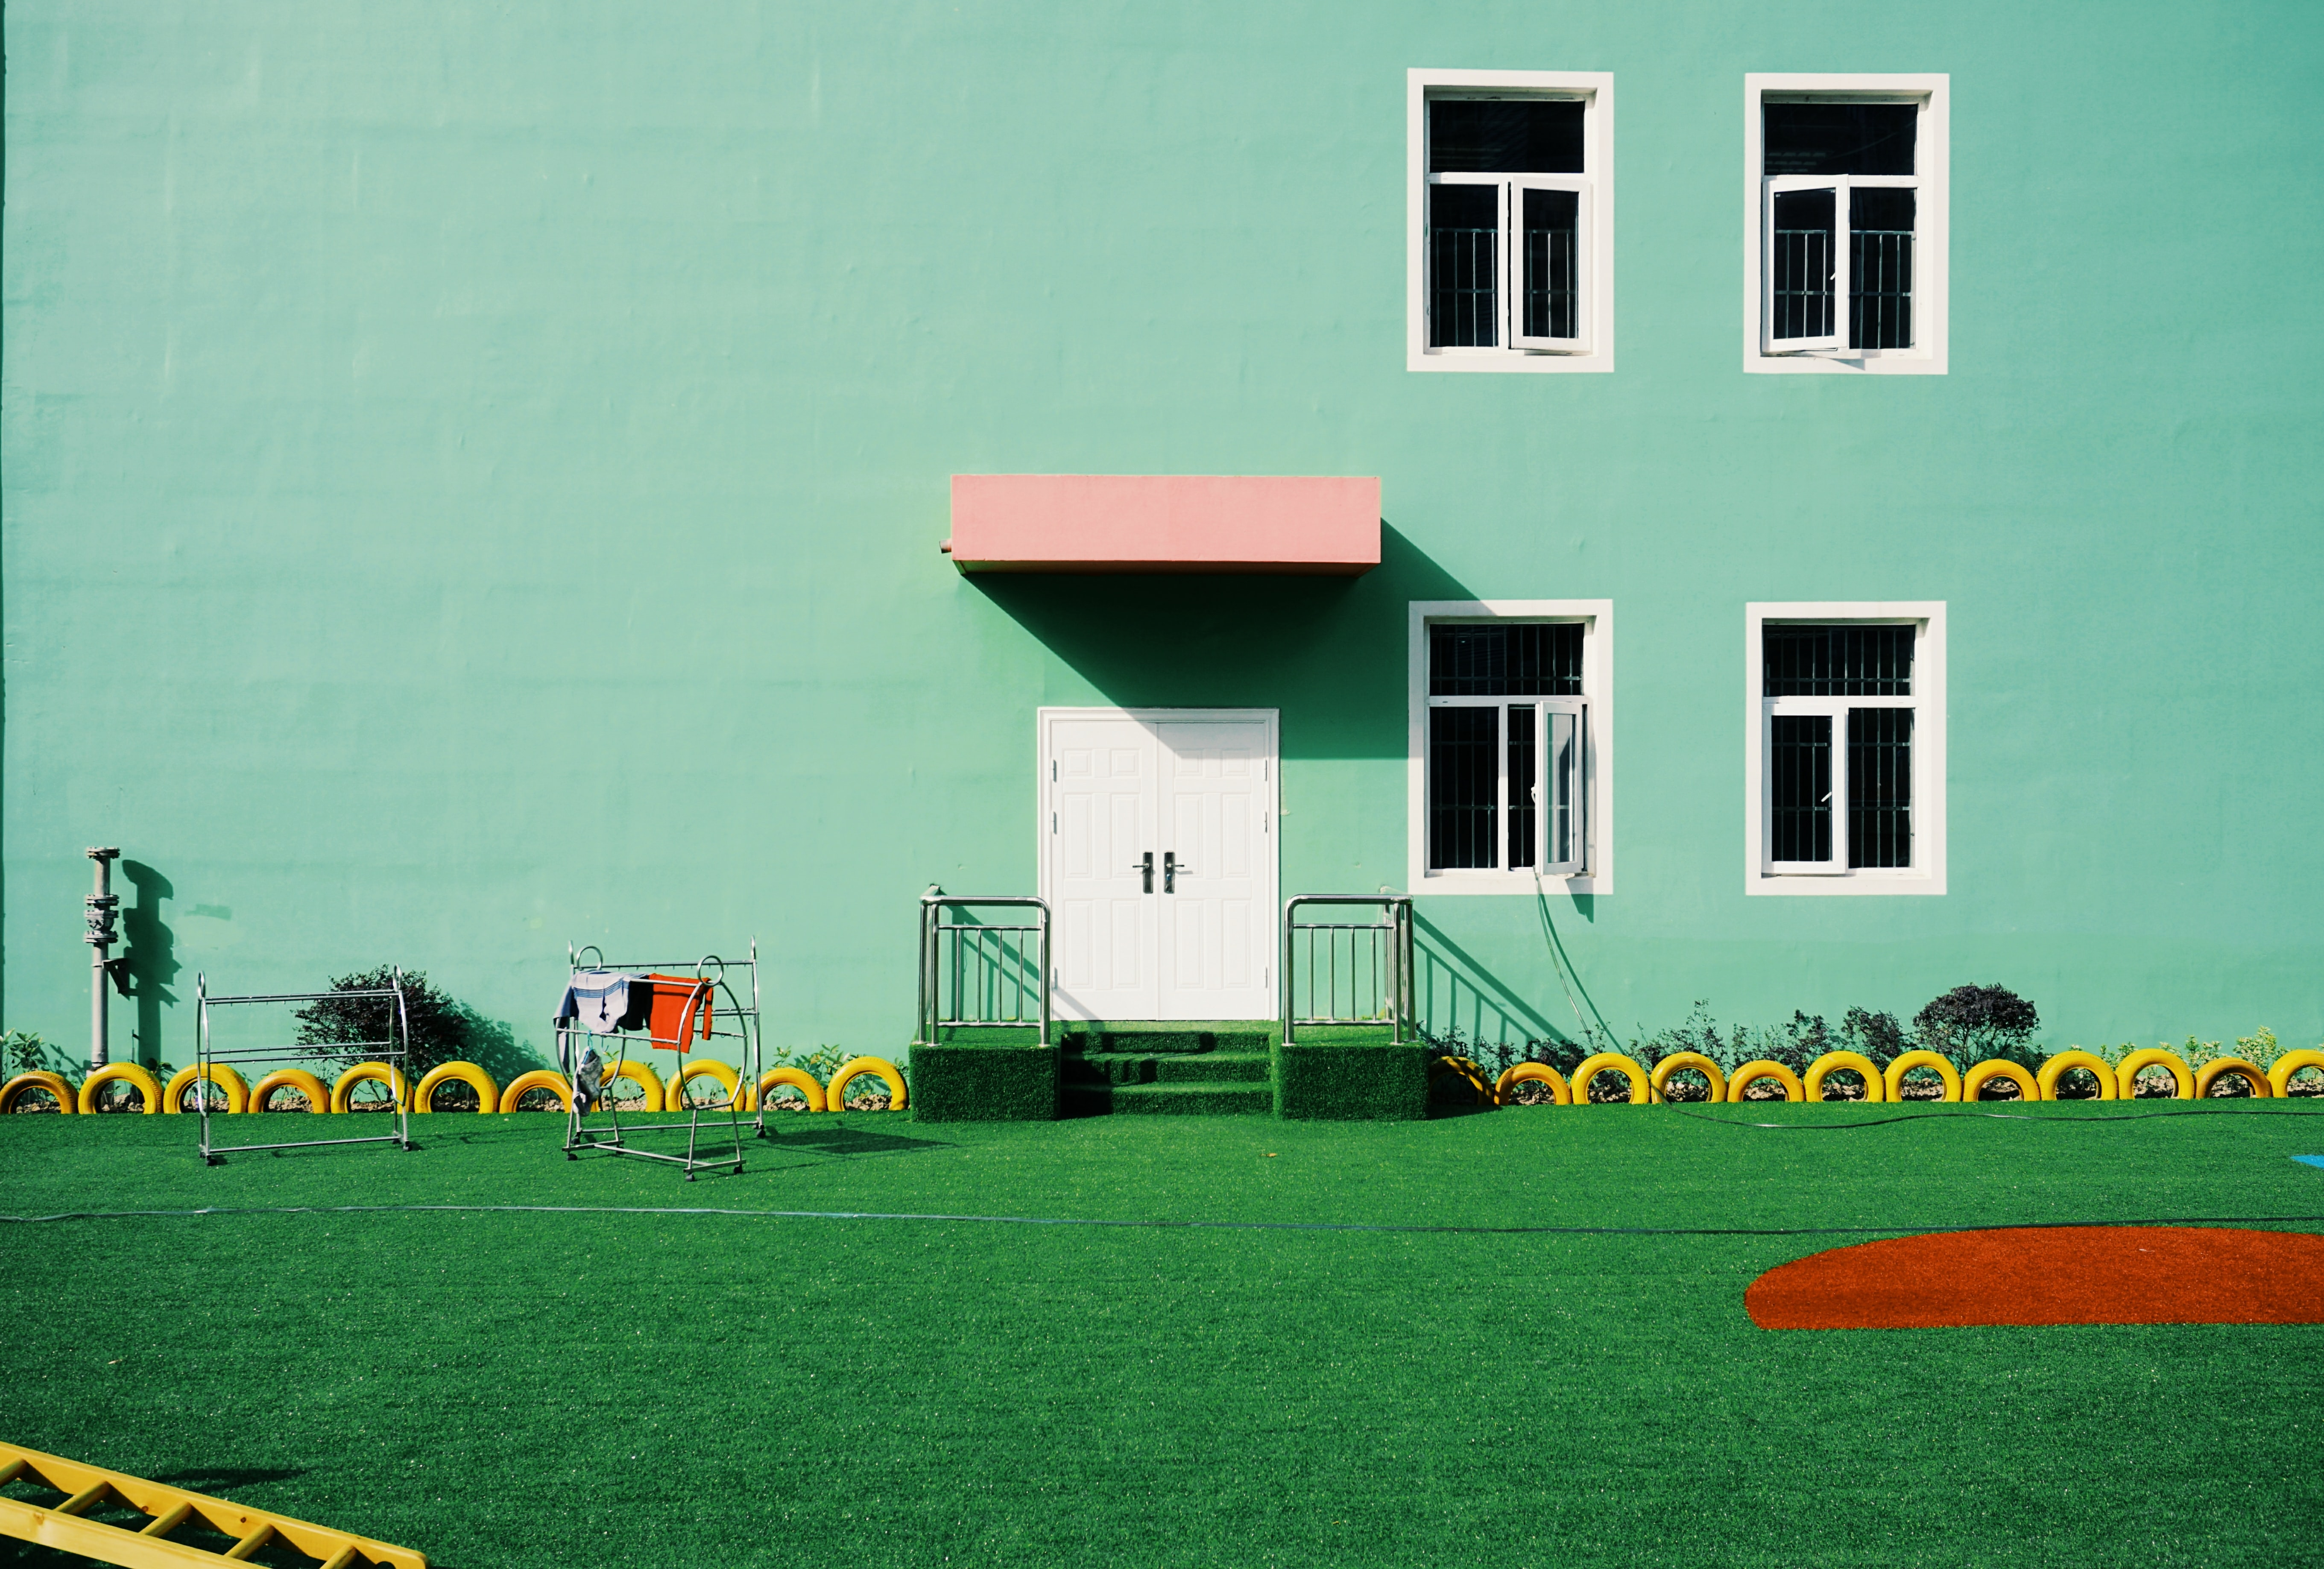 green painted building beside lawn